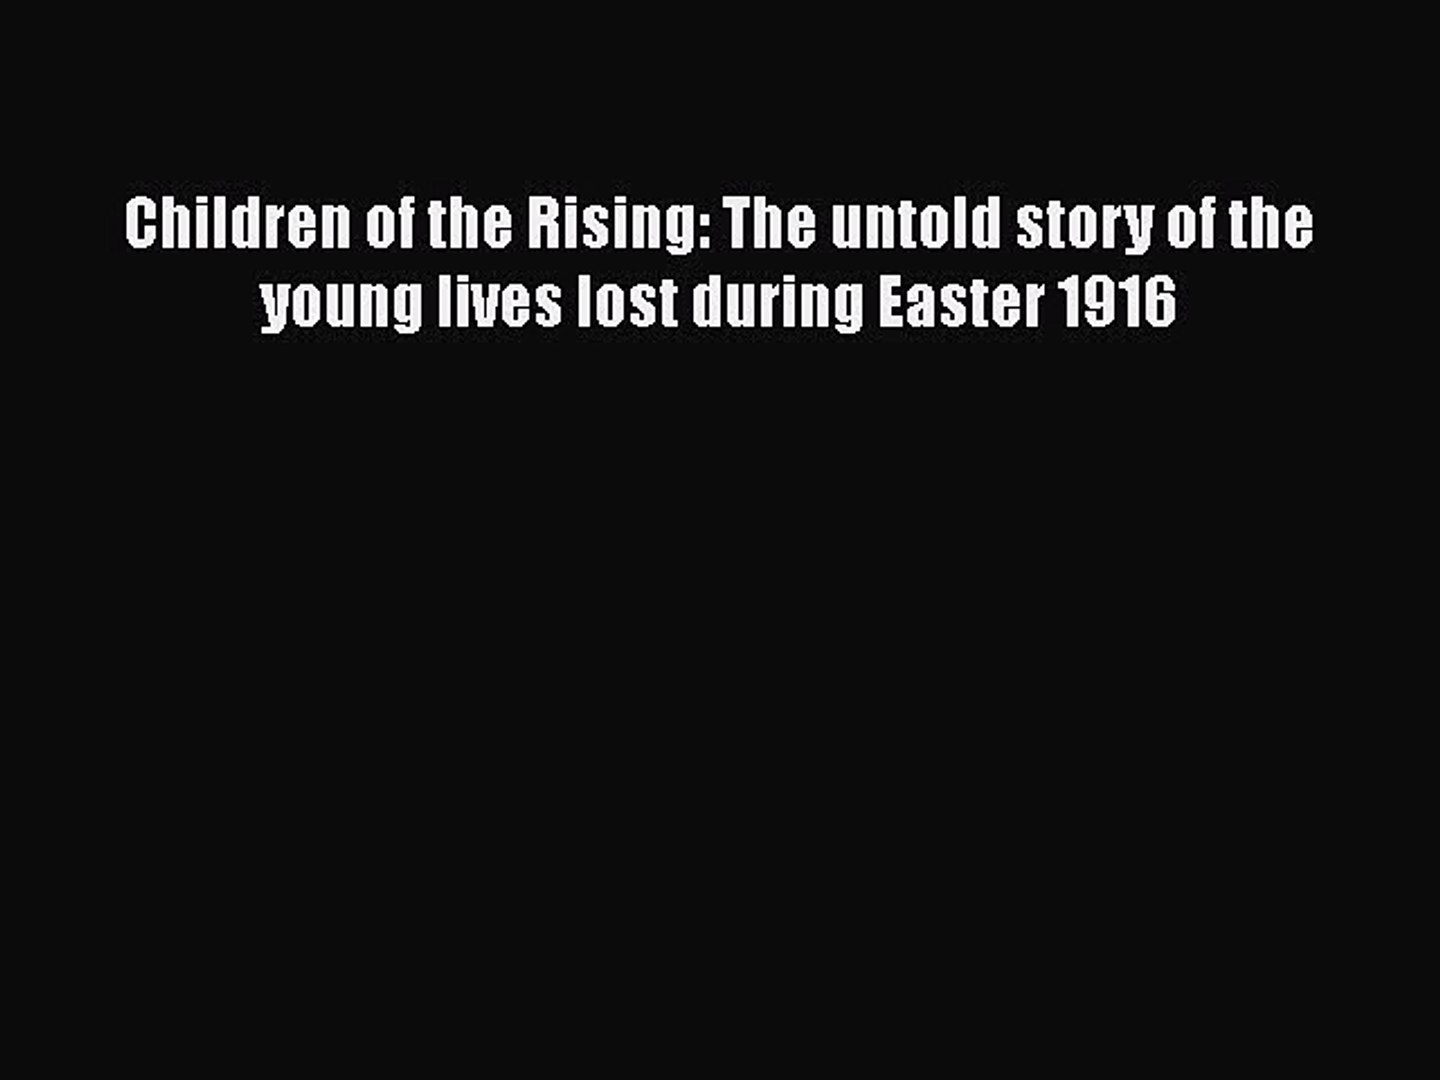 Children of the Rising: The untold story of the young lives lost during Easter 1916 Free Download